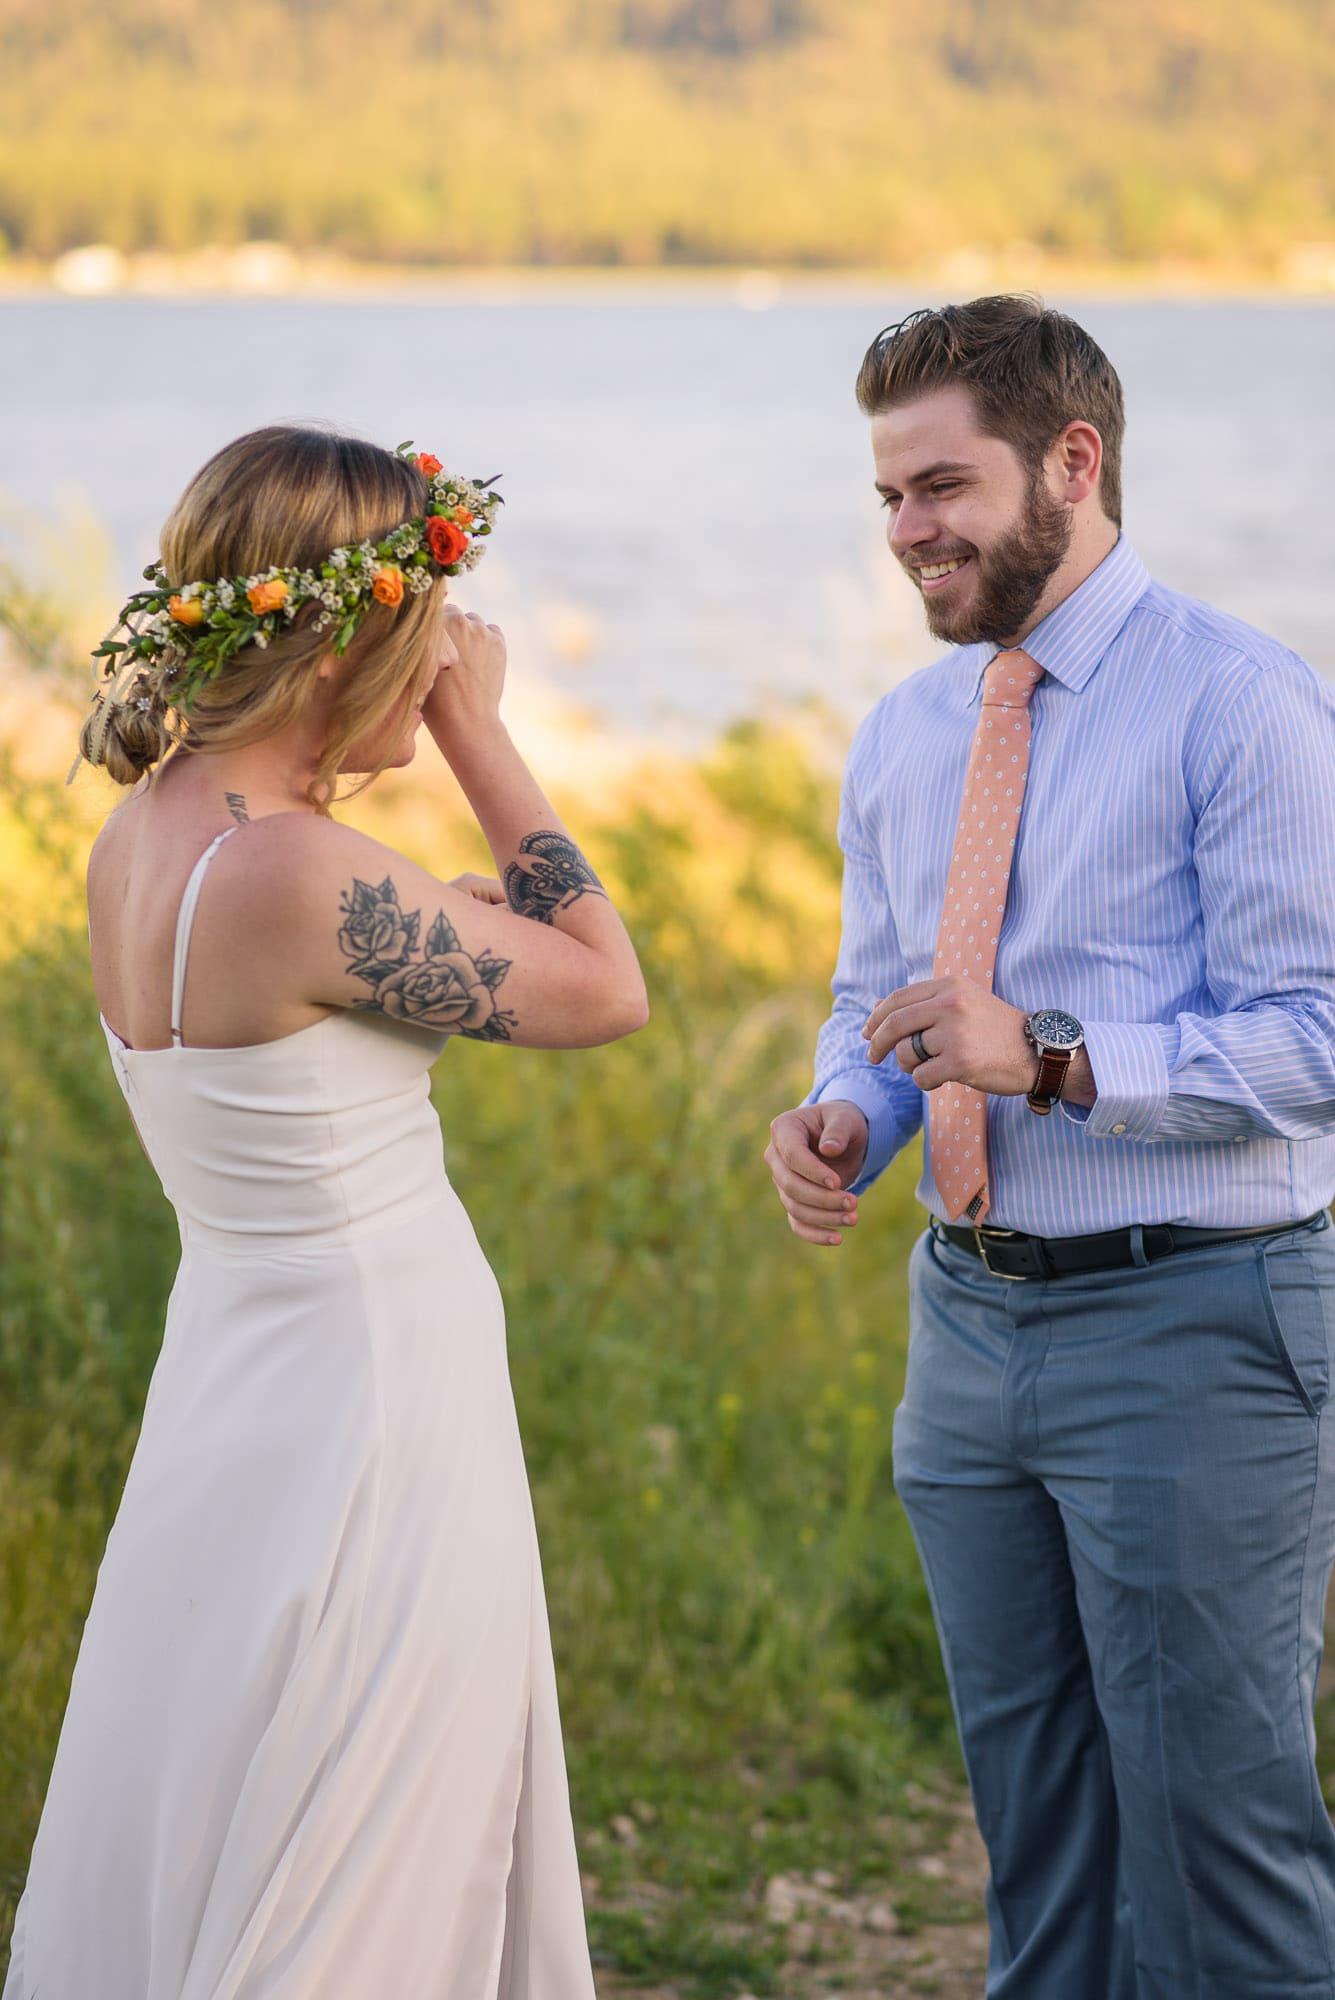 037_Alan_and_Heidi_Kensey_Josh_Big_Bear_Elopement